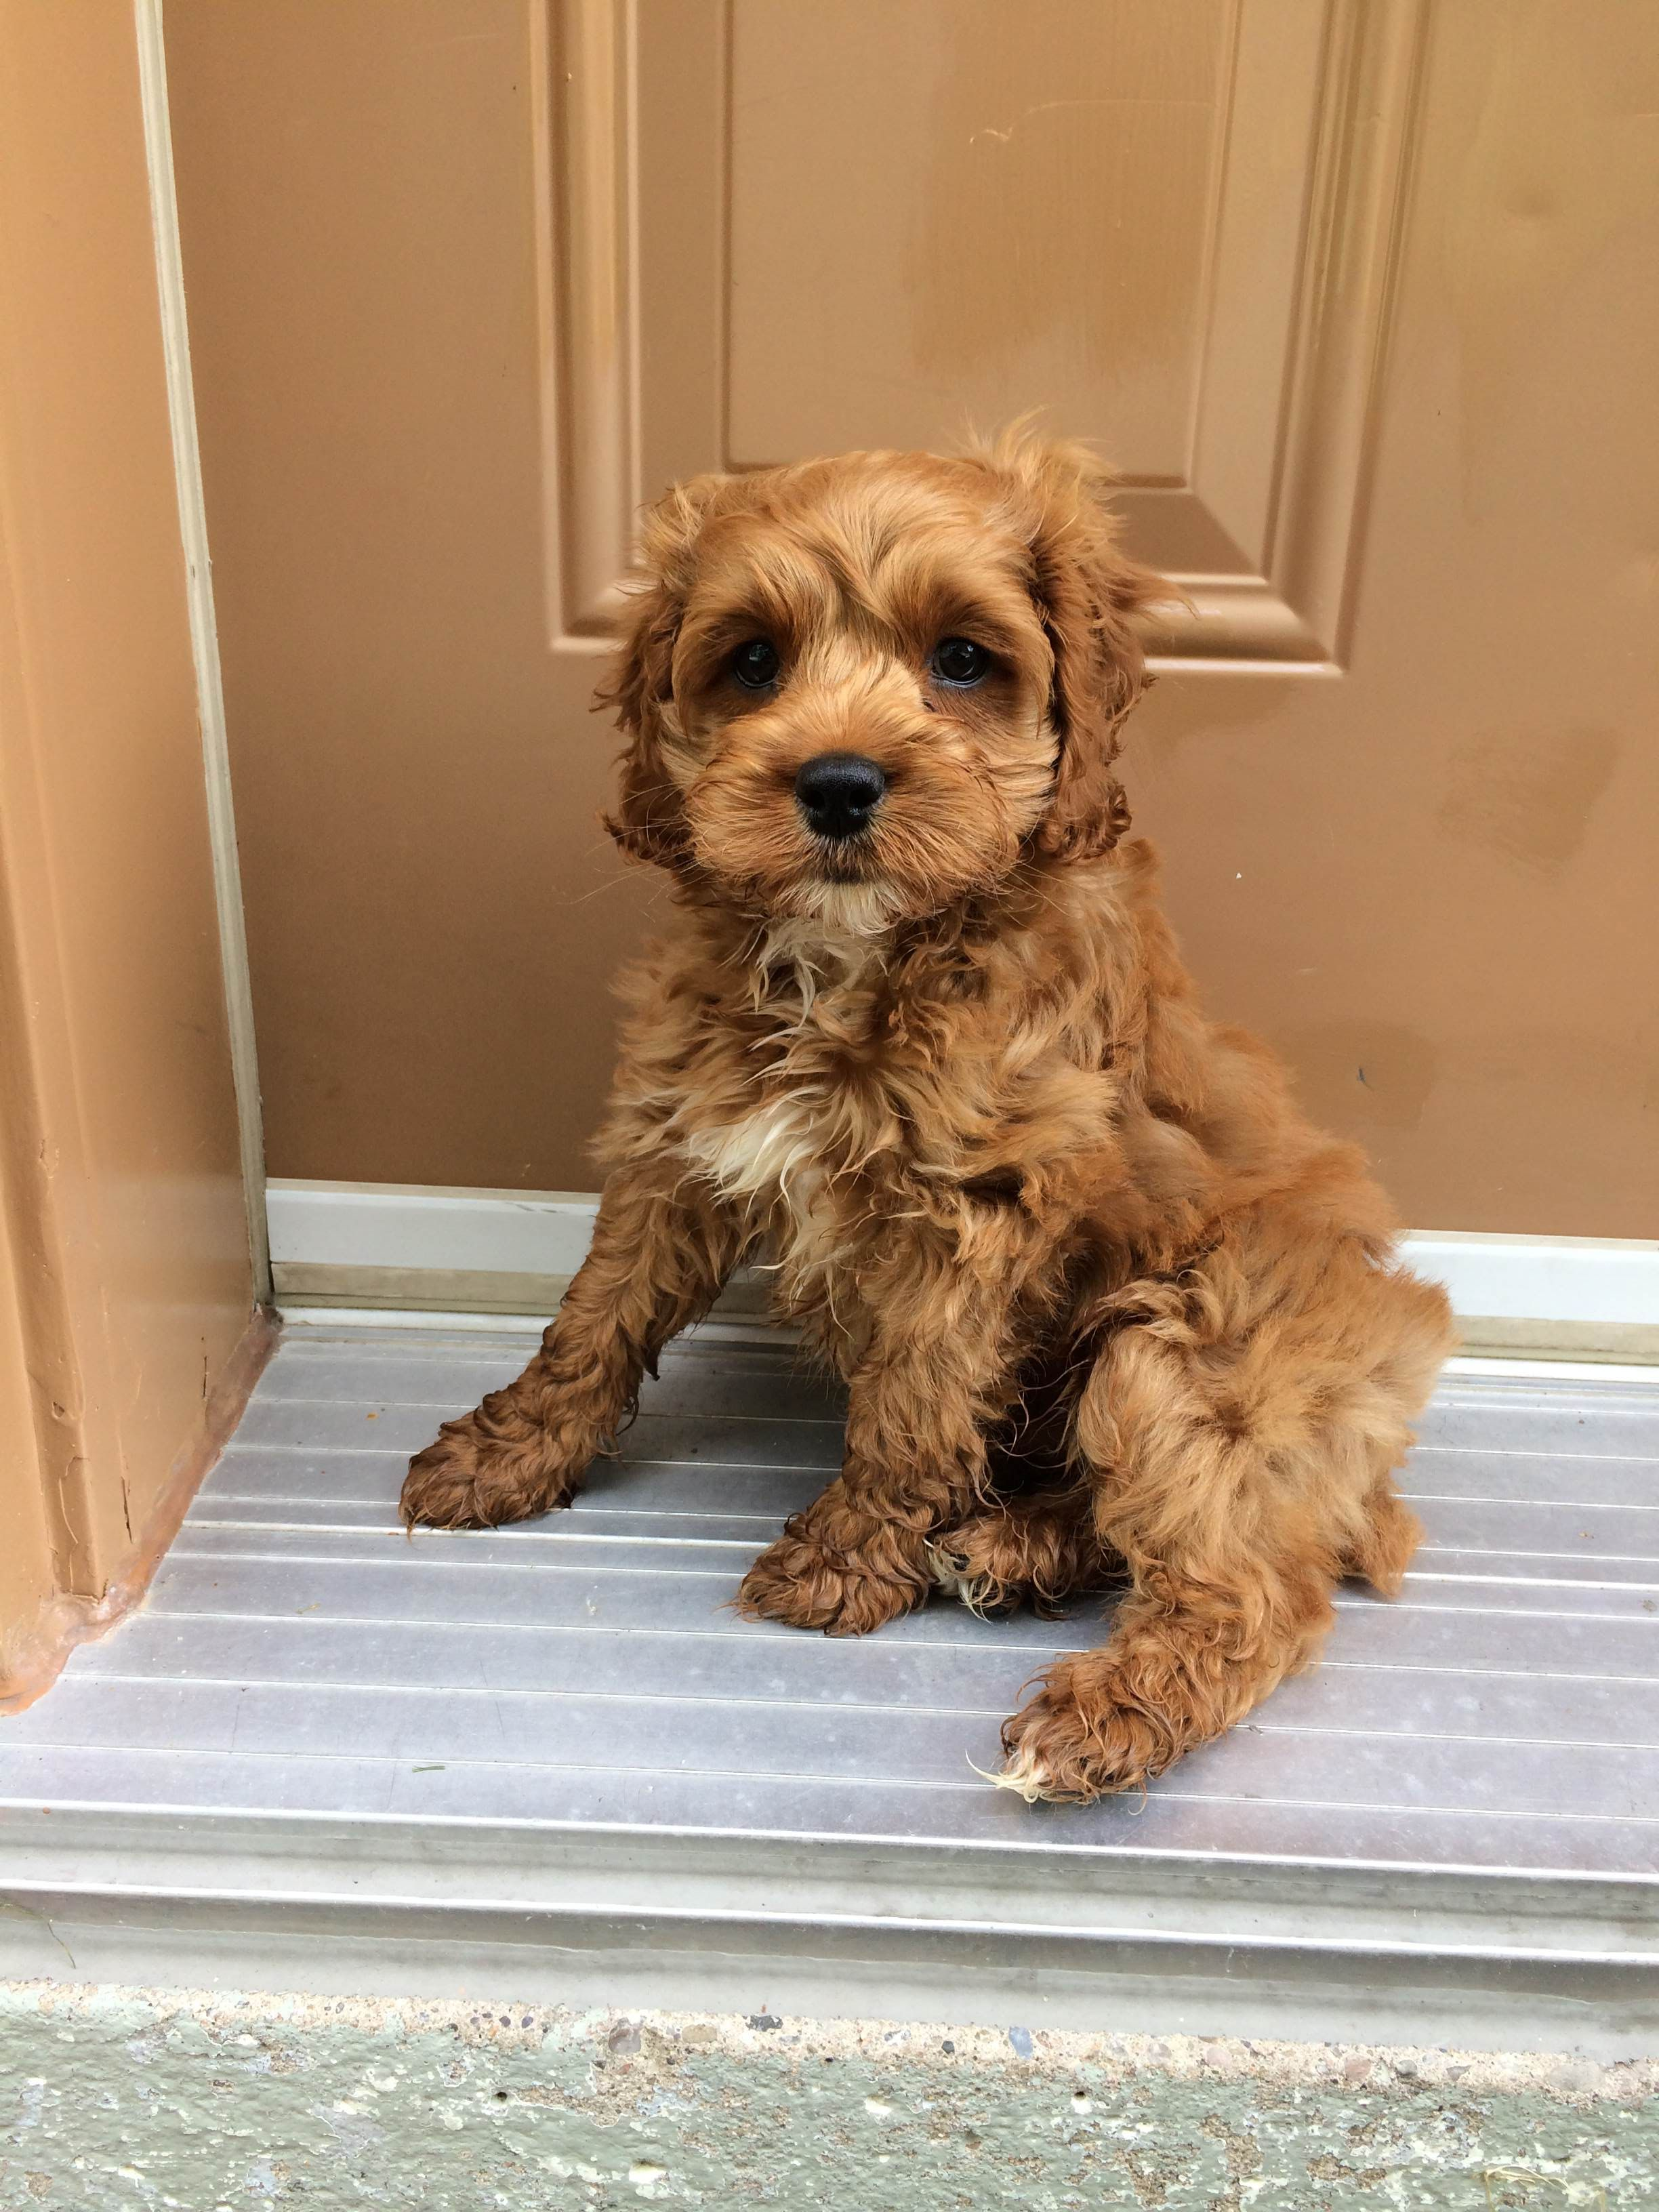 Here is my new puppy Remy! He sits by the door when he is